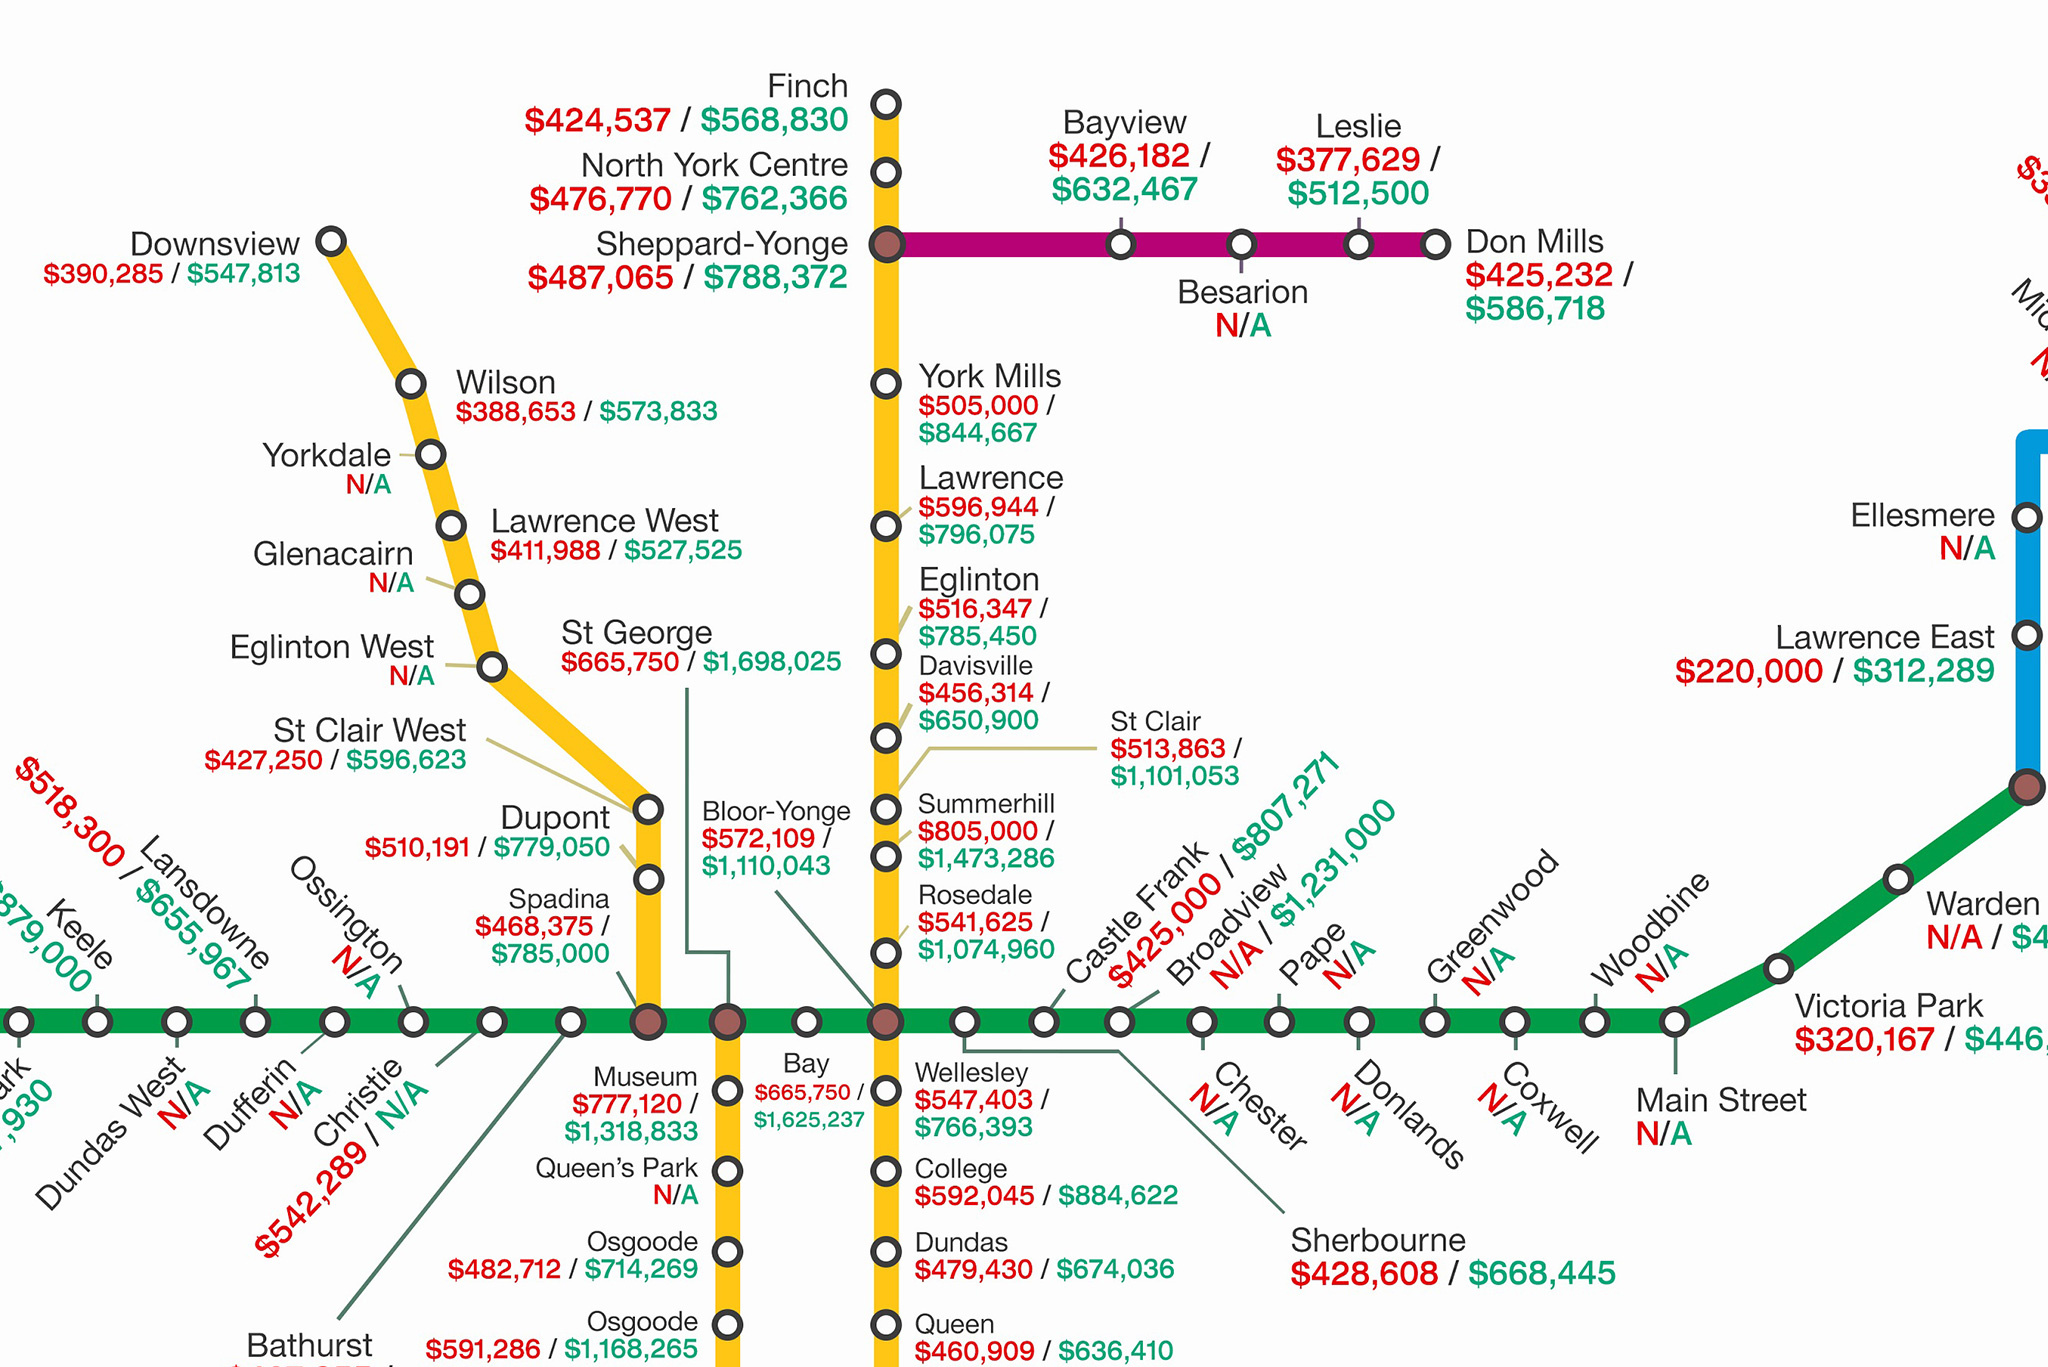 Map charts Toronto condo prices by TTC subway stop